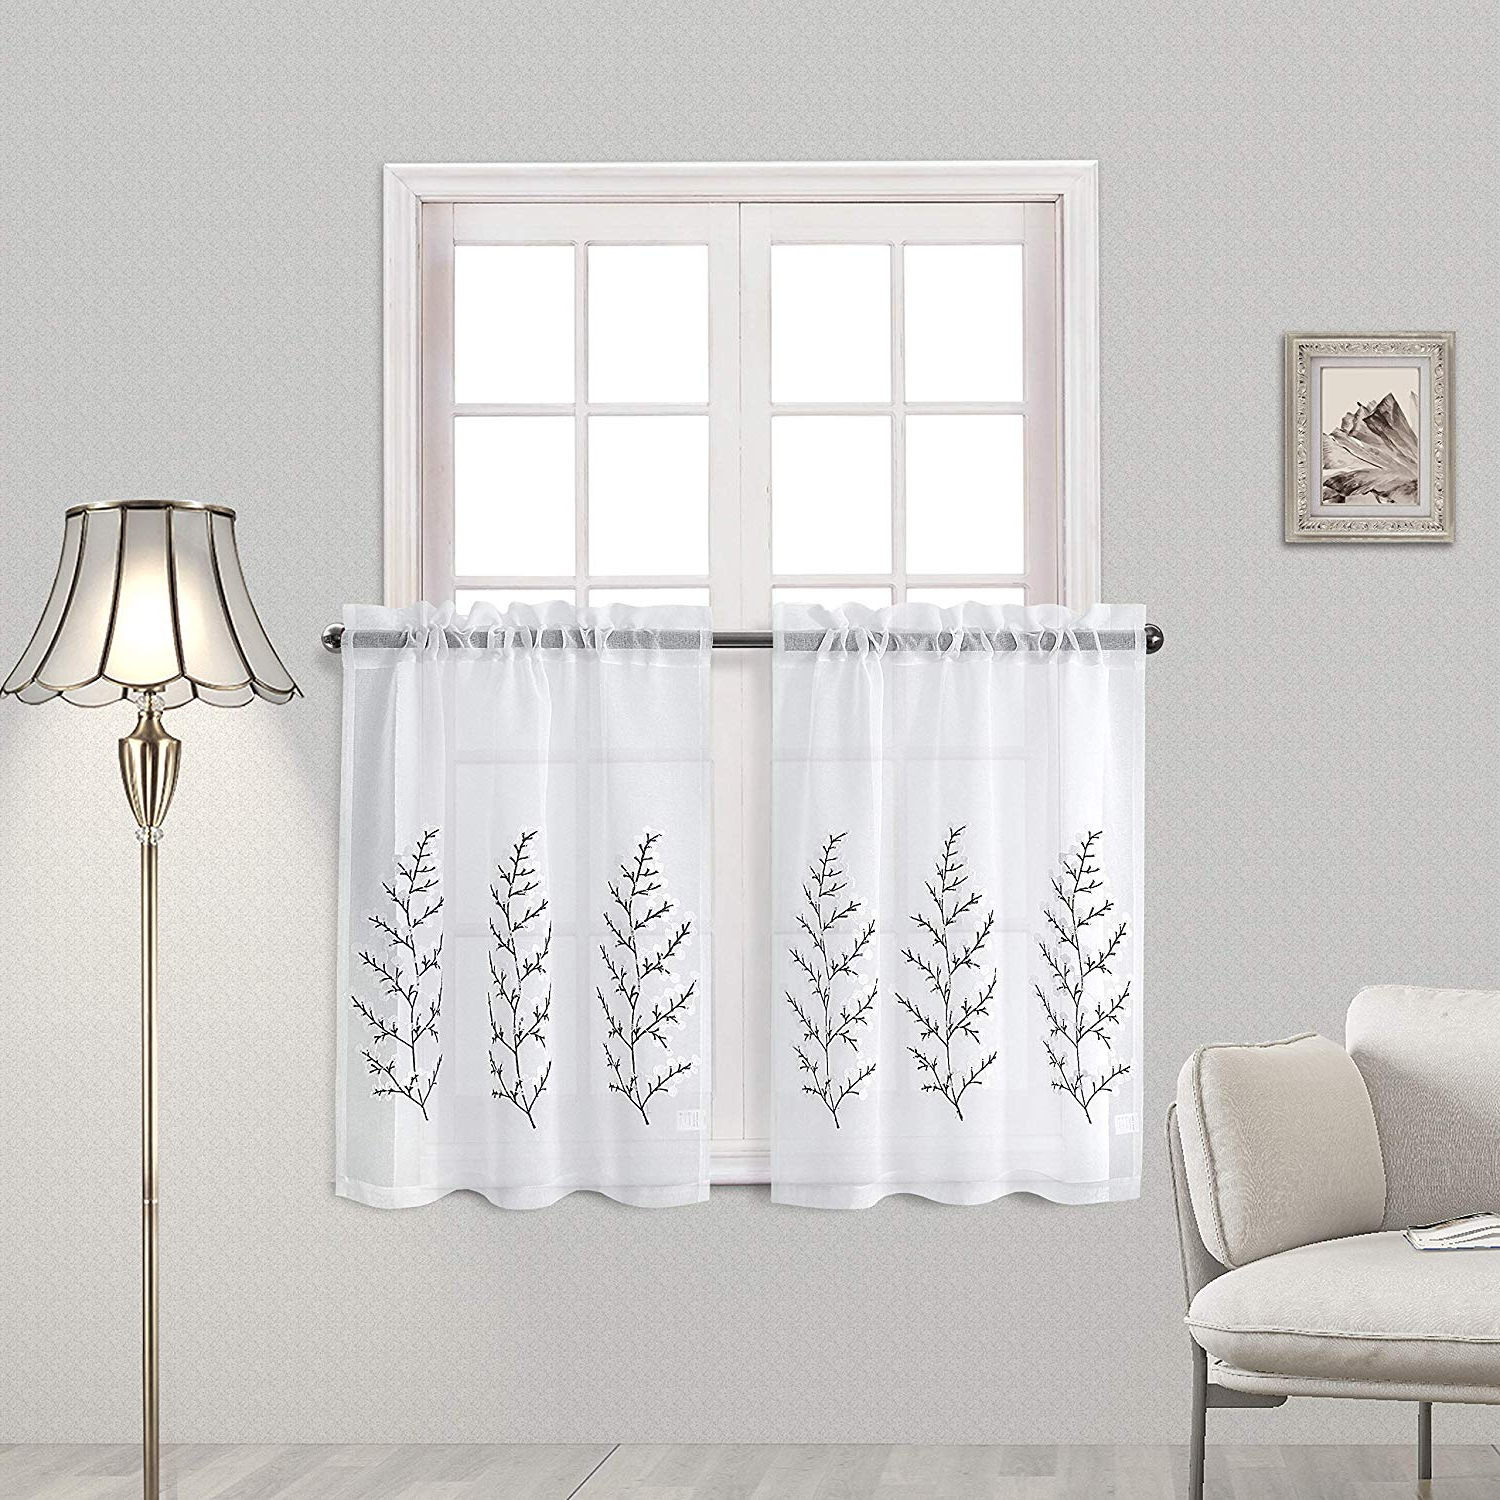 Preferred Dwcn Tier Curtains Kitchen Cafe Floral Embroidered Sheer Window Curtain Set, Faux Linen Rod Pocket Window Curtains, W 32 X L 36 Inch, 2 Panels Within Embroidered Rod Pocket Kitchen Tiers (View 6 of 20)